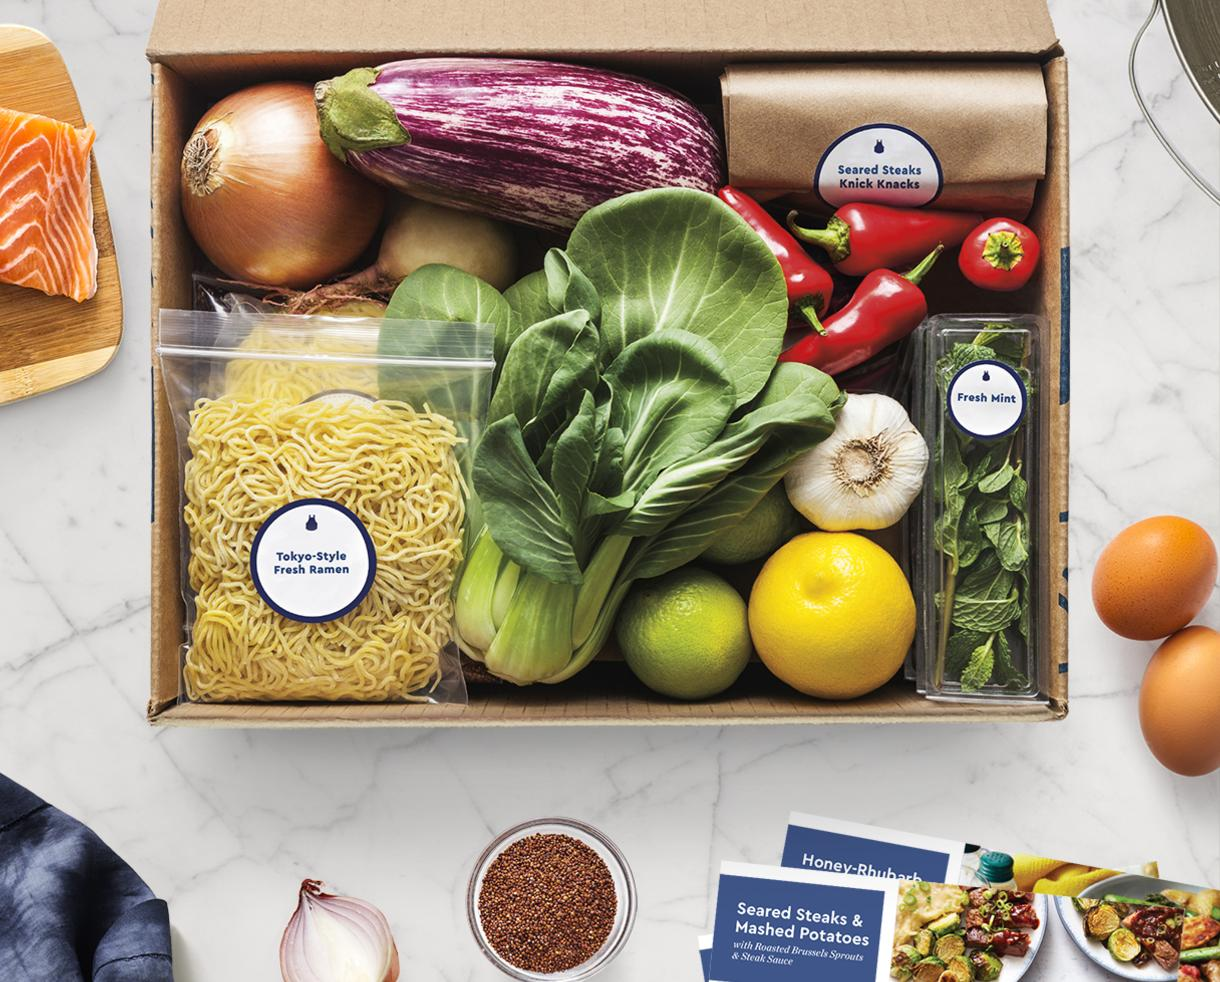 Get 35 off your first delivery of blue apron americas 1 recipe get 35 off your first delivery of blue apron americas 1 recipe delivery service forumfinder